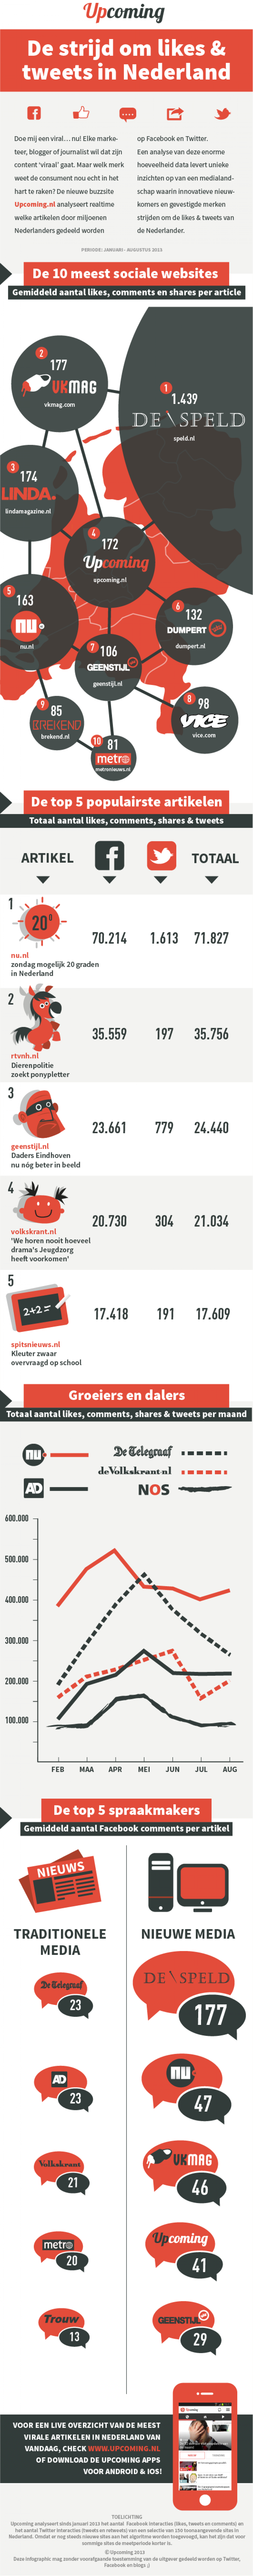 Upcoming.nl infographic Design Infographic